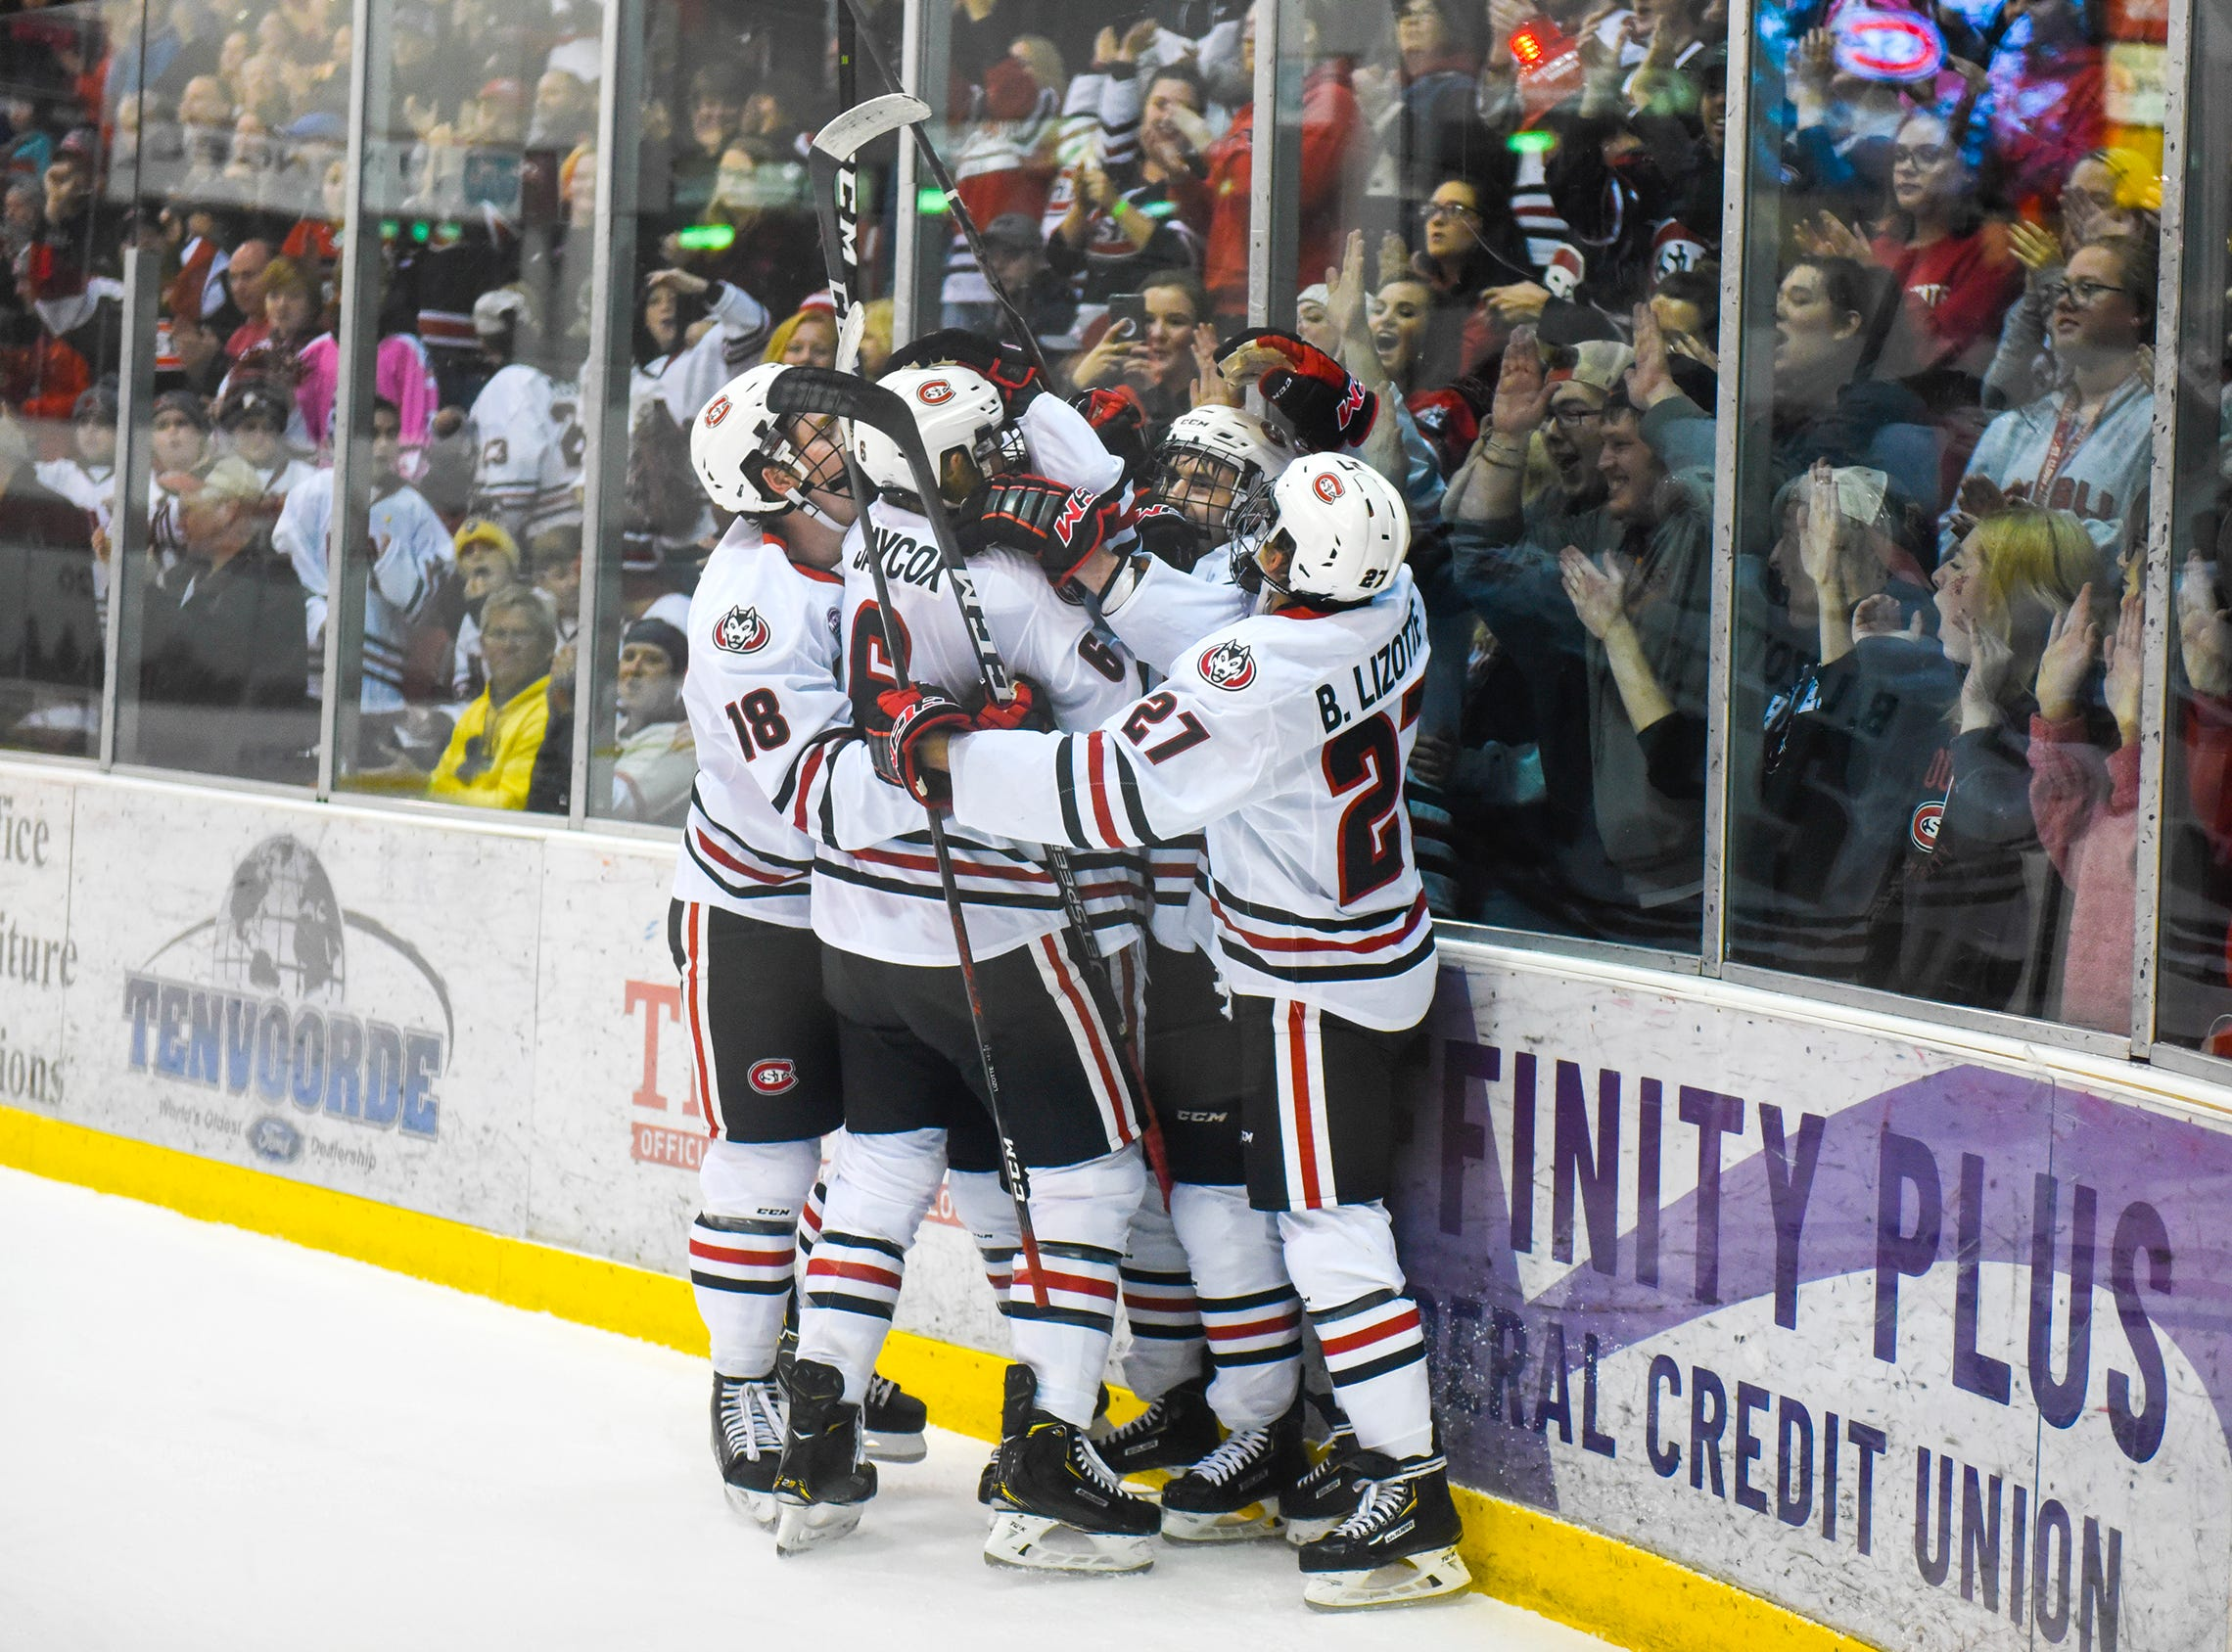 St. Cloud State players celebrate a goal during the first period of the  Saturday, Oct. 20, game against Northern Michigan at the Herb Brooks National Hockey Center in St. Cloud.